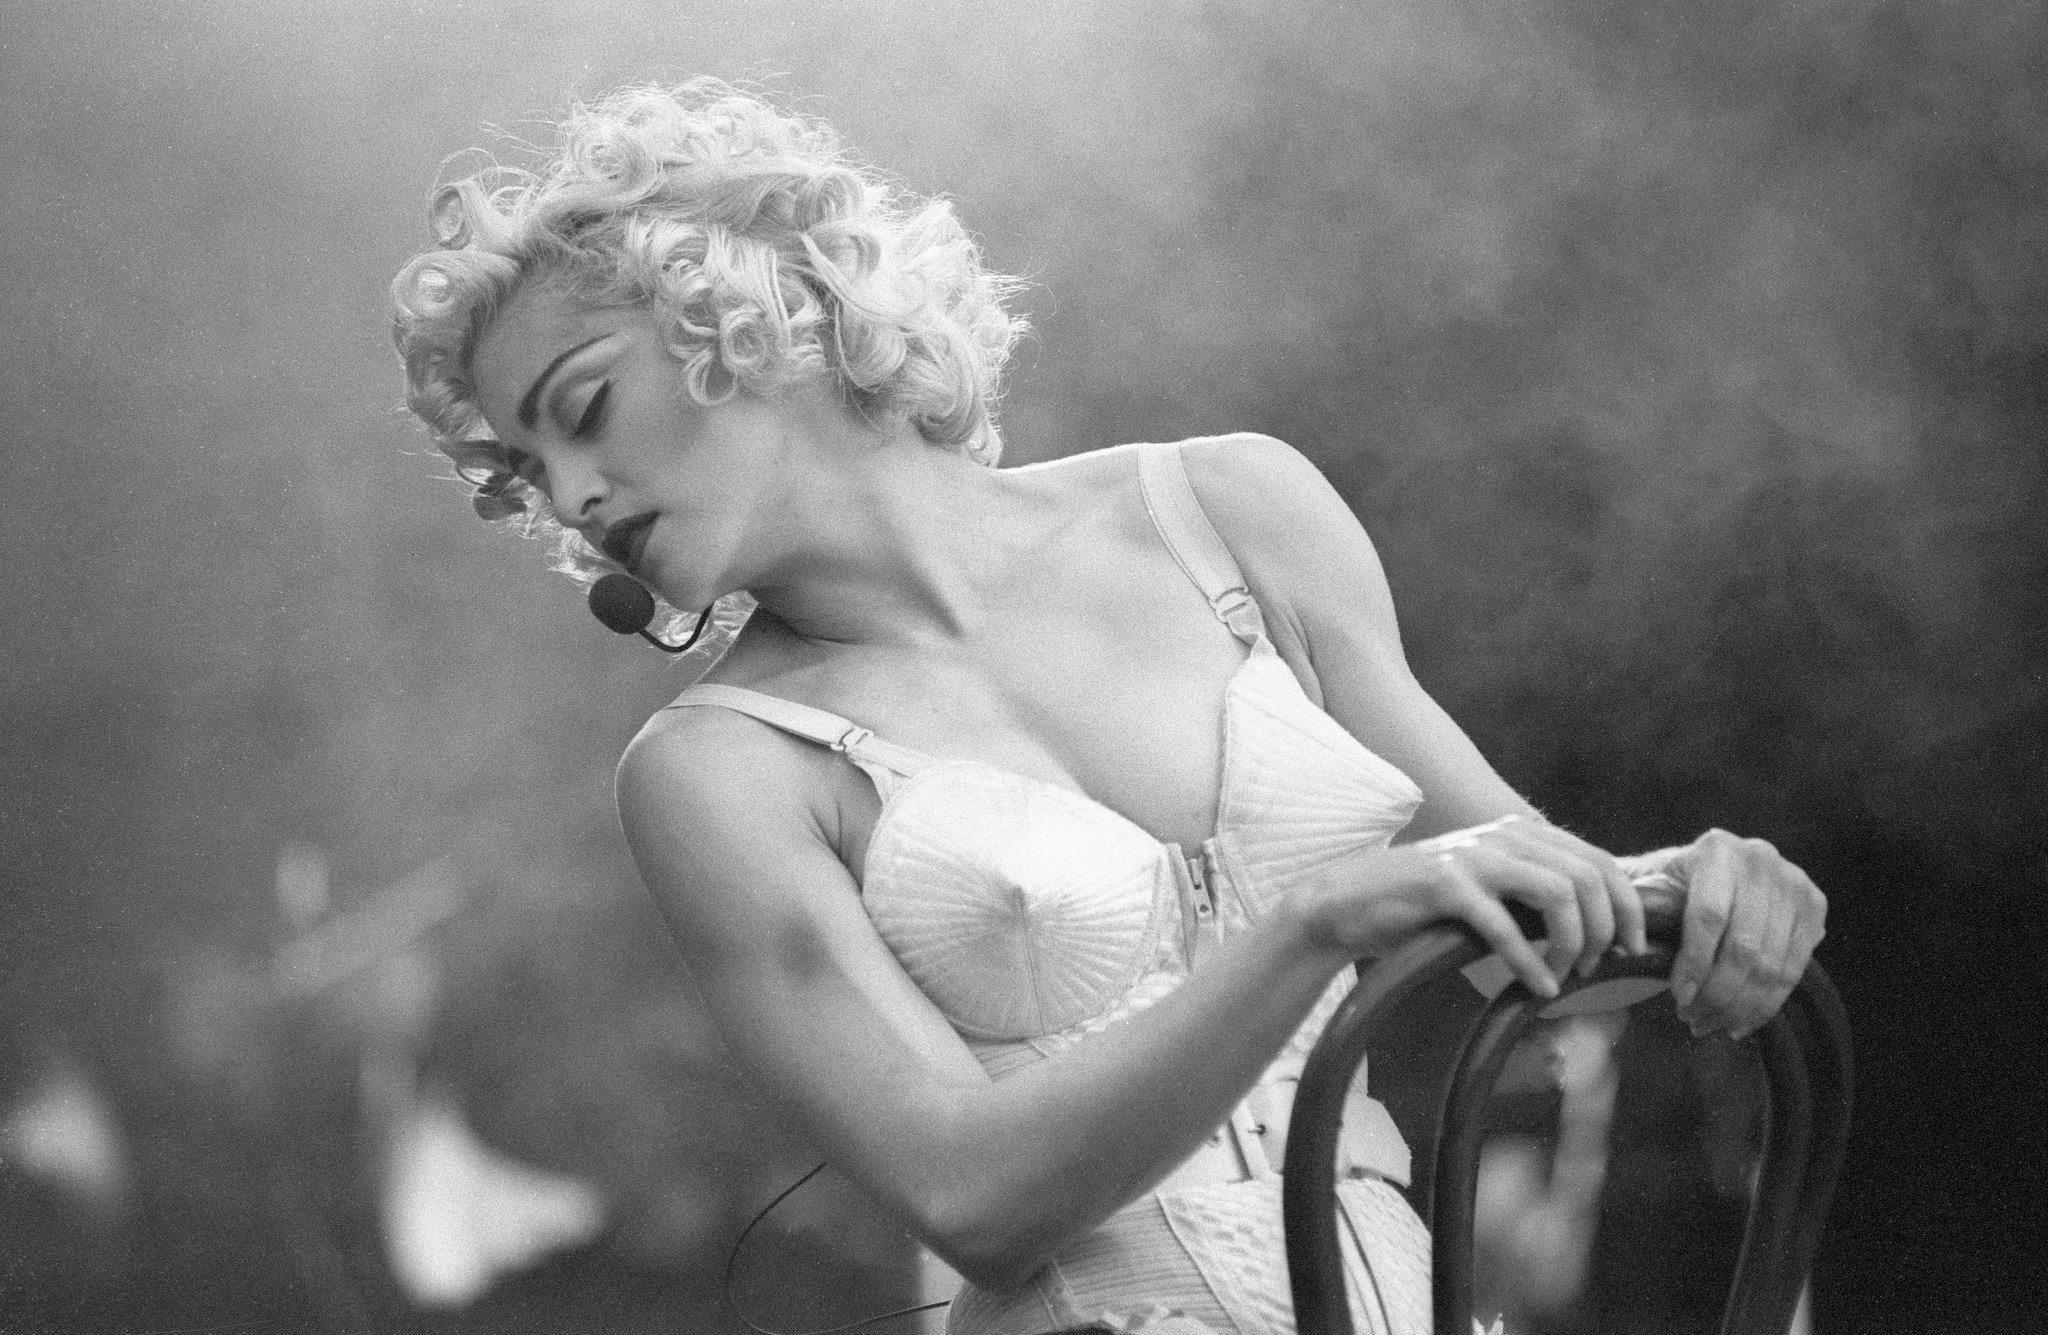 Madonna in 1990.CreditPhotograph by Frans Schellekens/Redferns/Getty Images